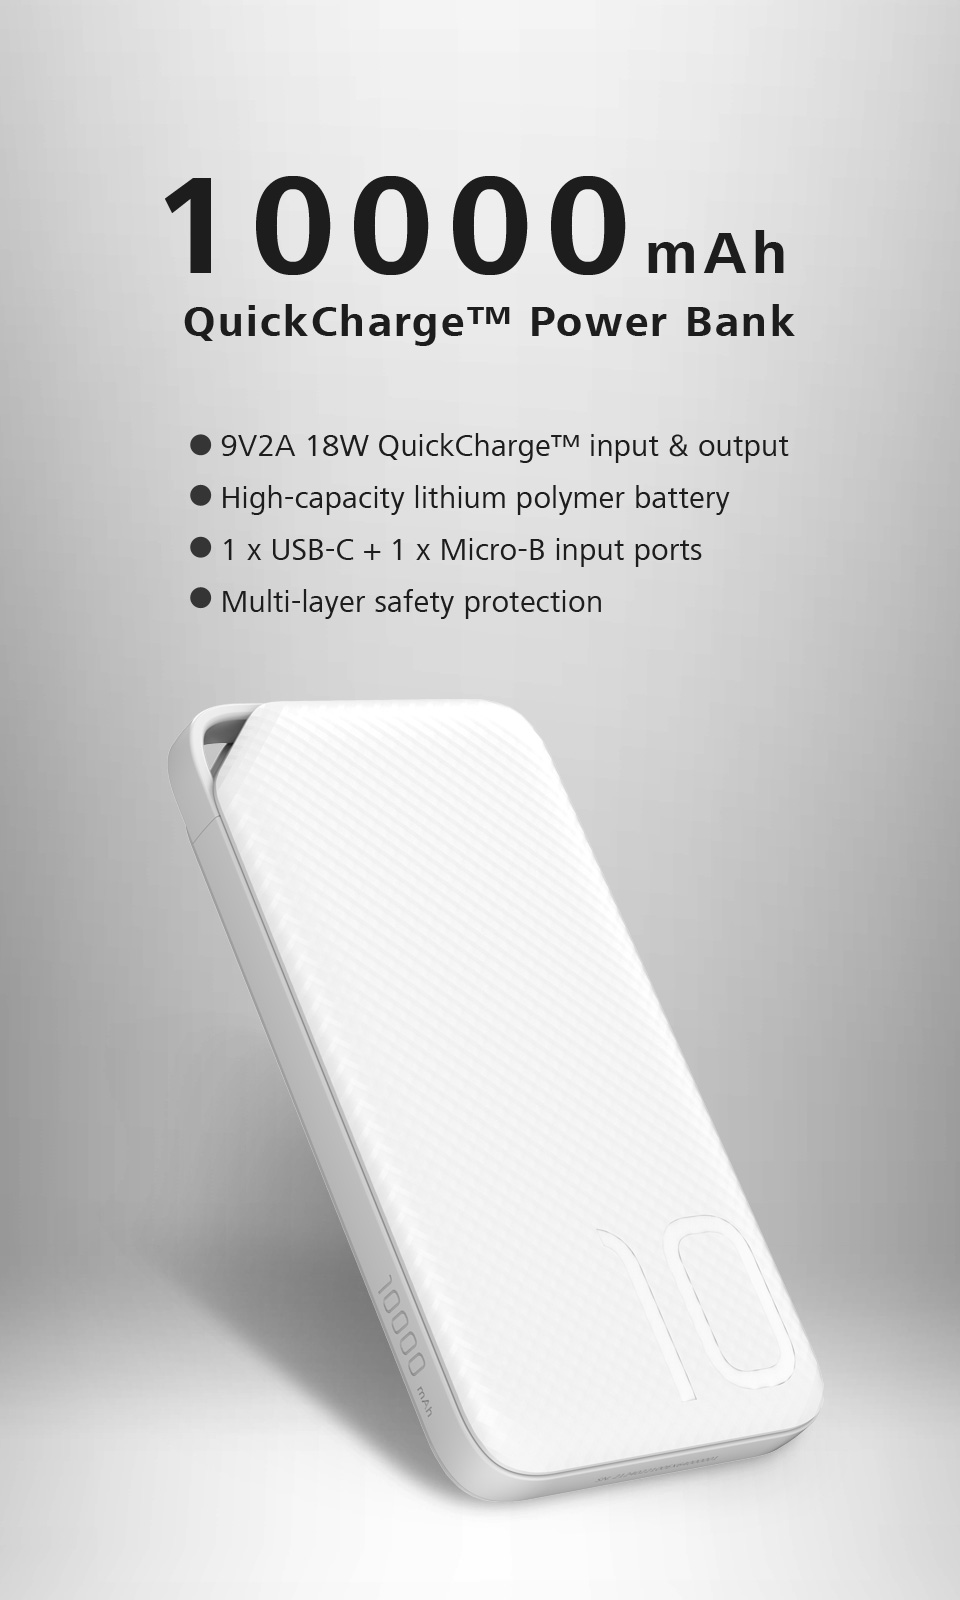 HUAWEI 10000 mAh QuickCharge™ Power Bank